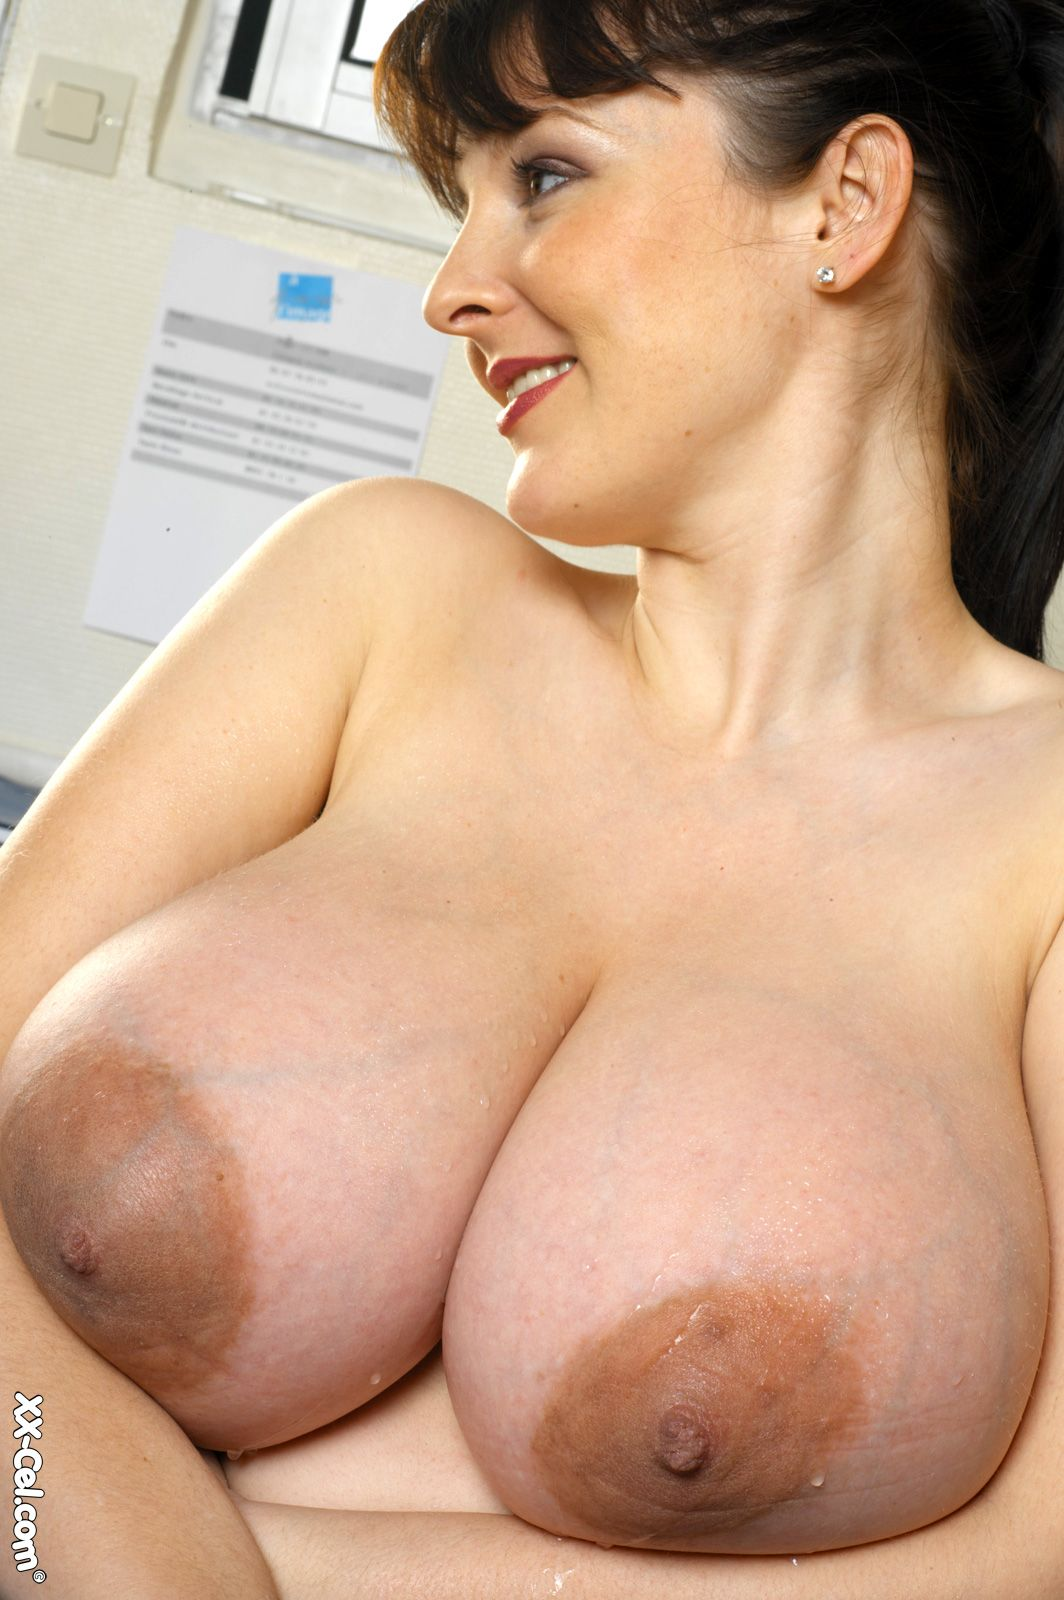 small tits big nipples tits videos : TIT-BIT : Big tits